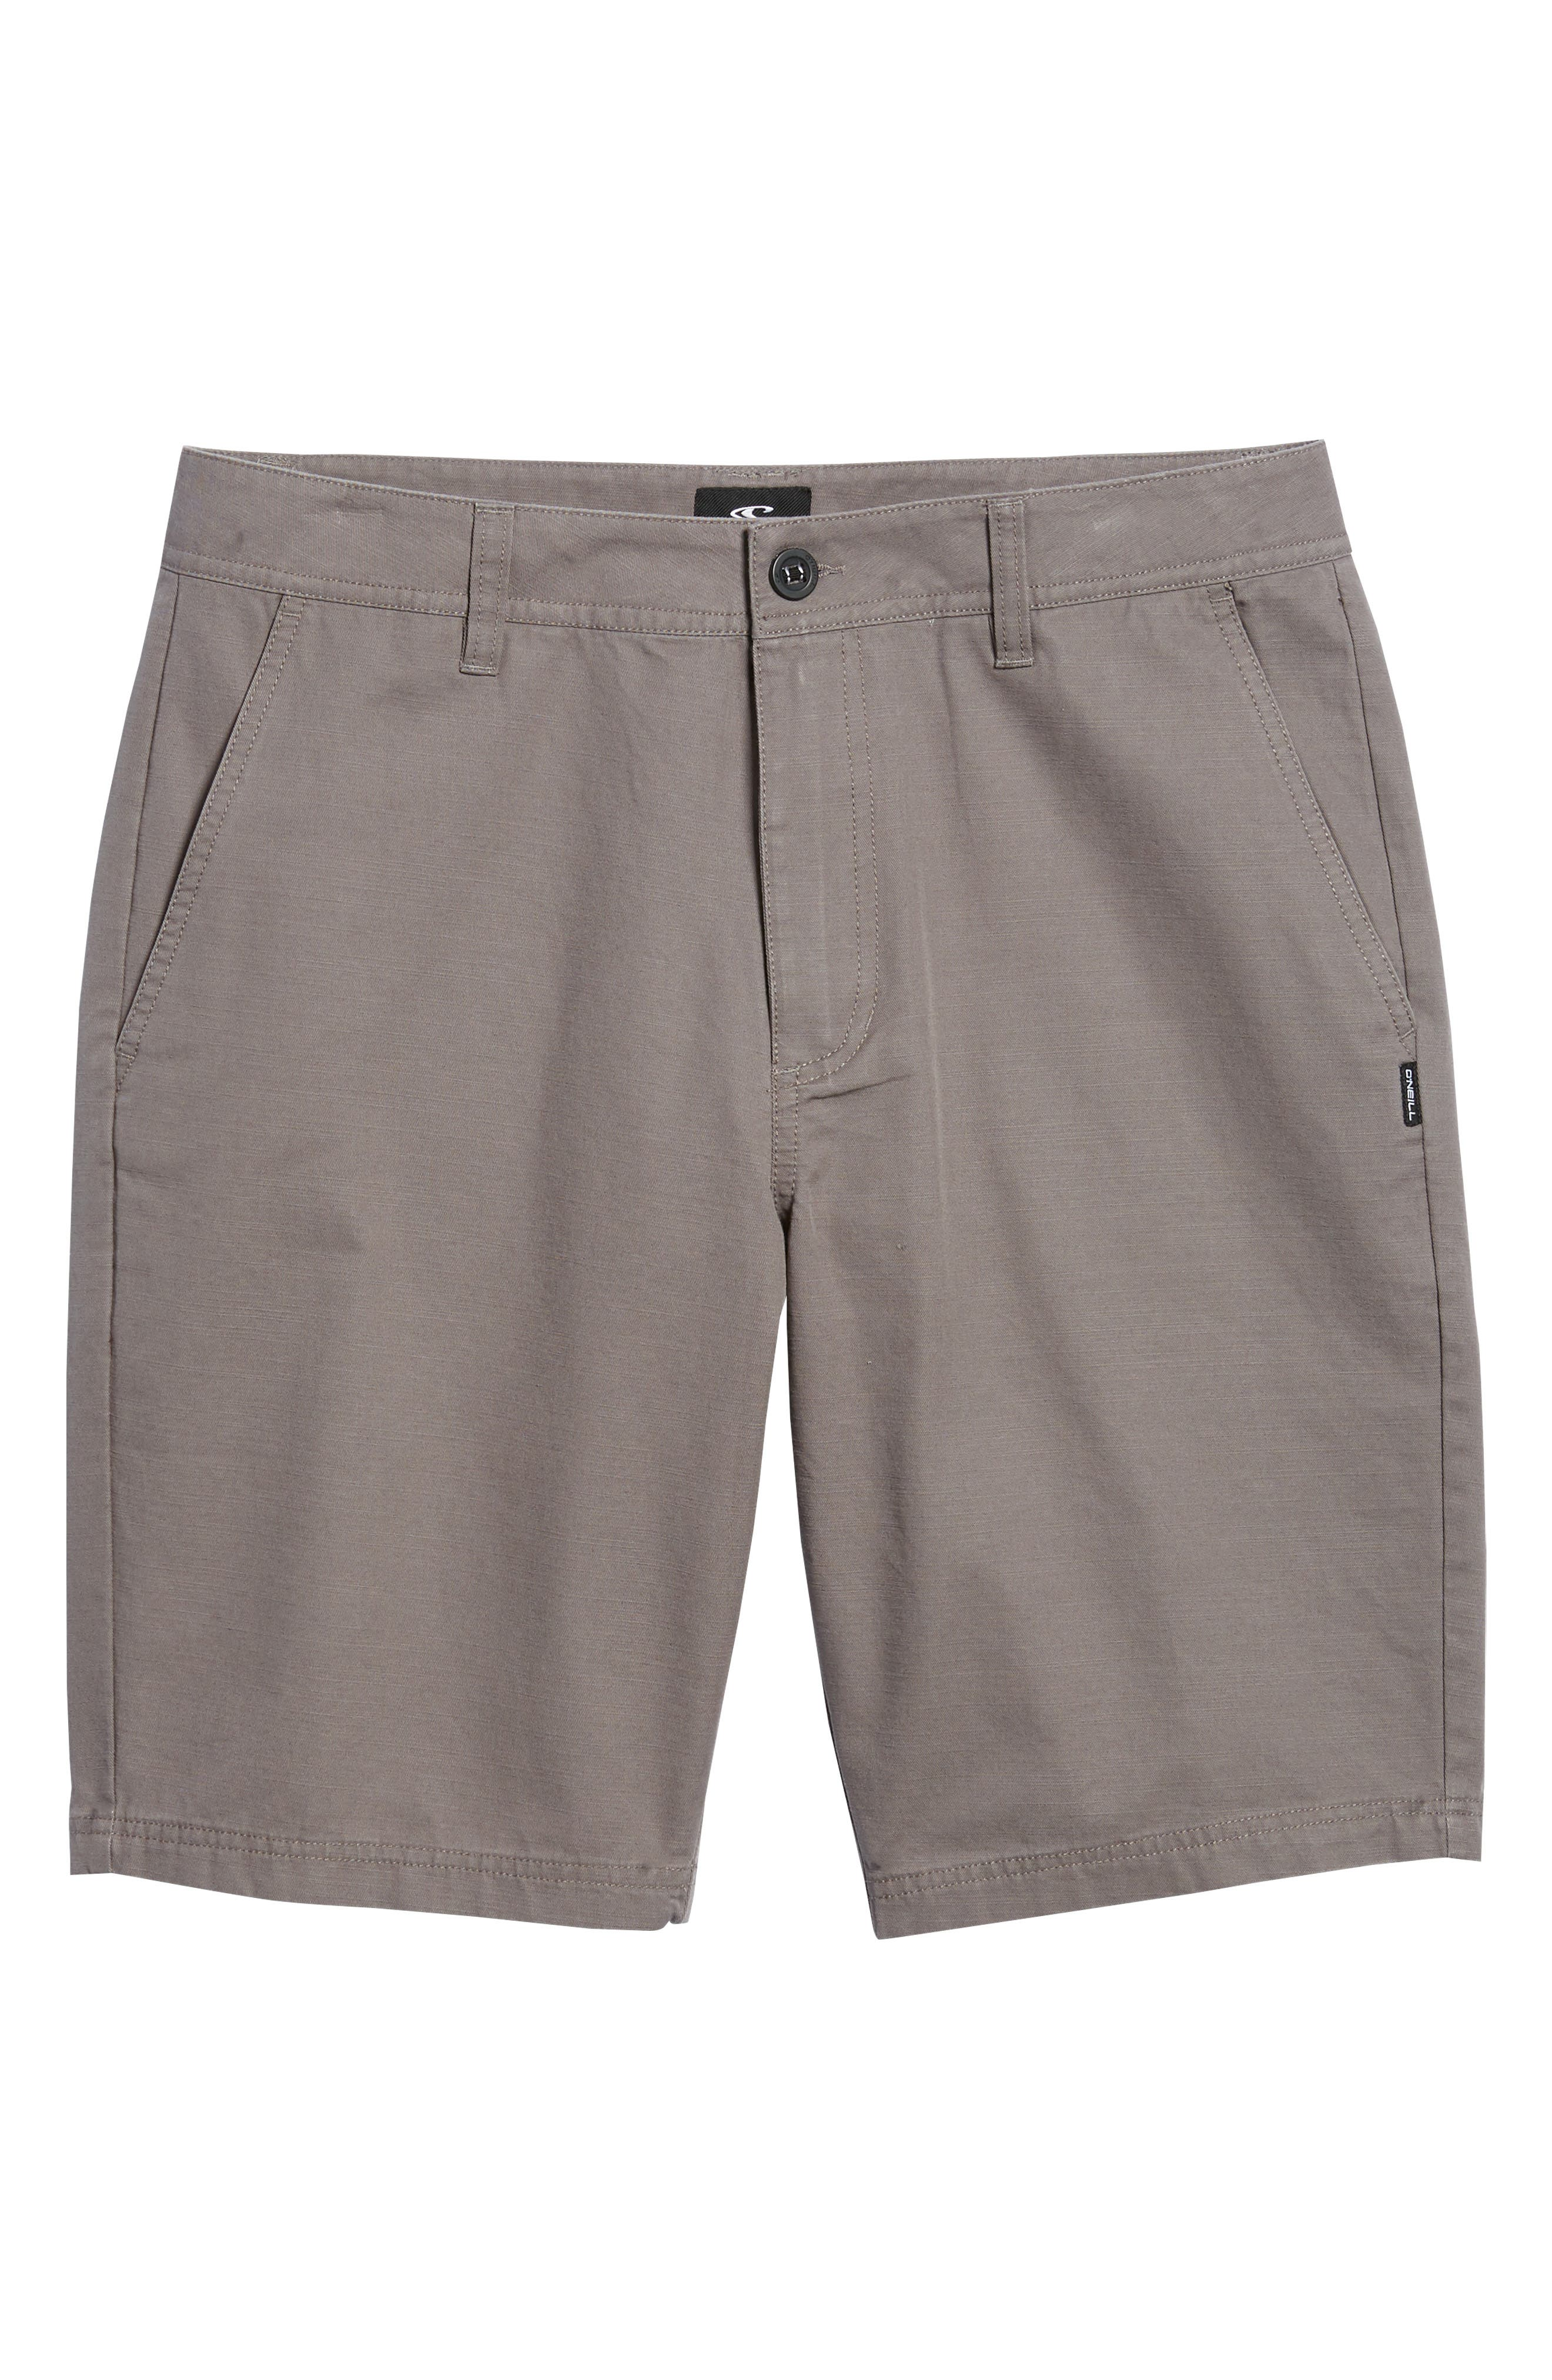 Jay Chino Shorts,                             Alternate thumbnail 6, color,                             Grey